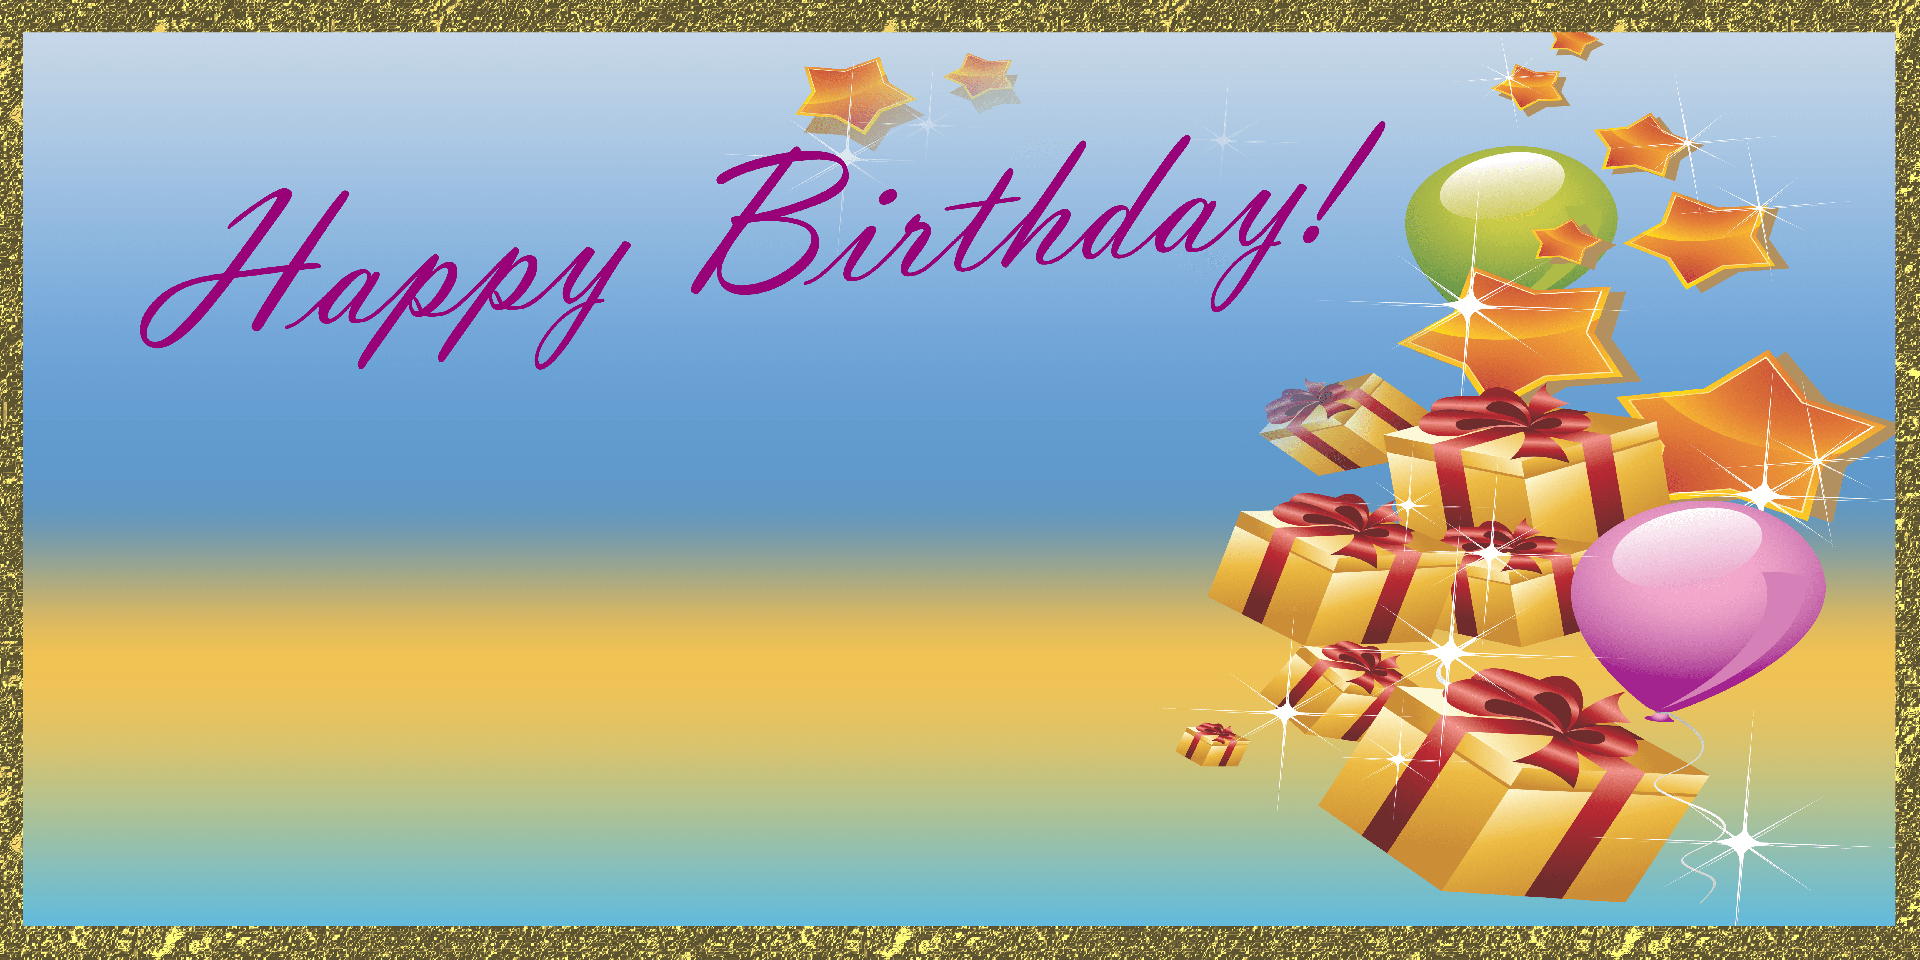 birthday banner images  Happy Birthday Banner - Gift Stars Gold - Vinyl Banners | Gatorprints